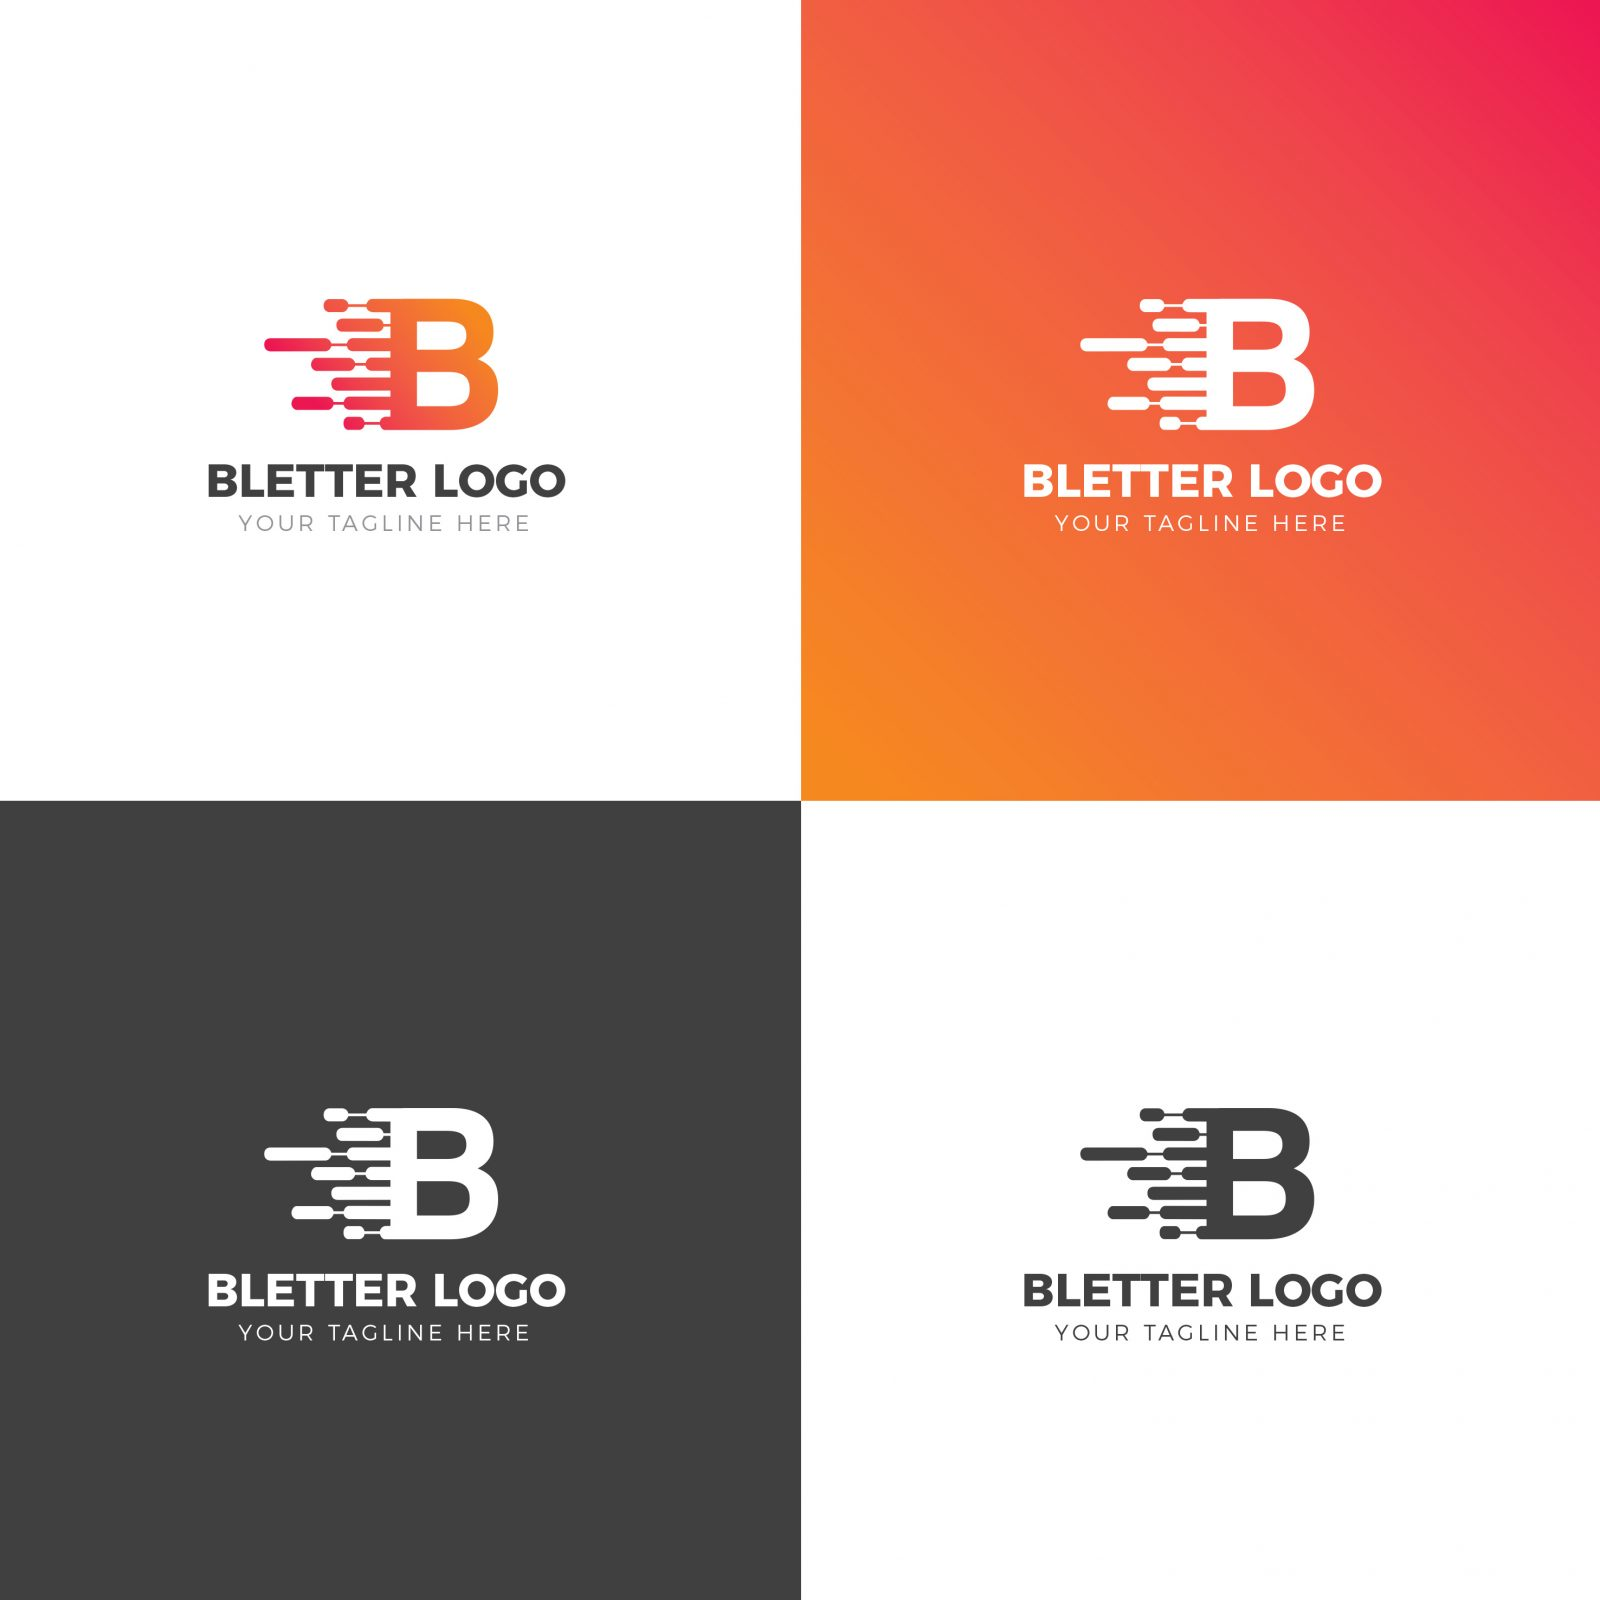 better creative logo design template 002030